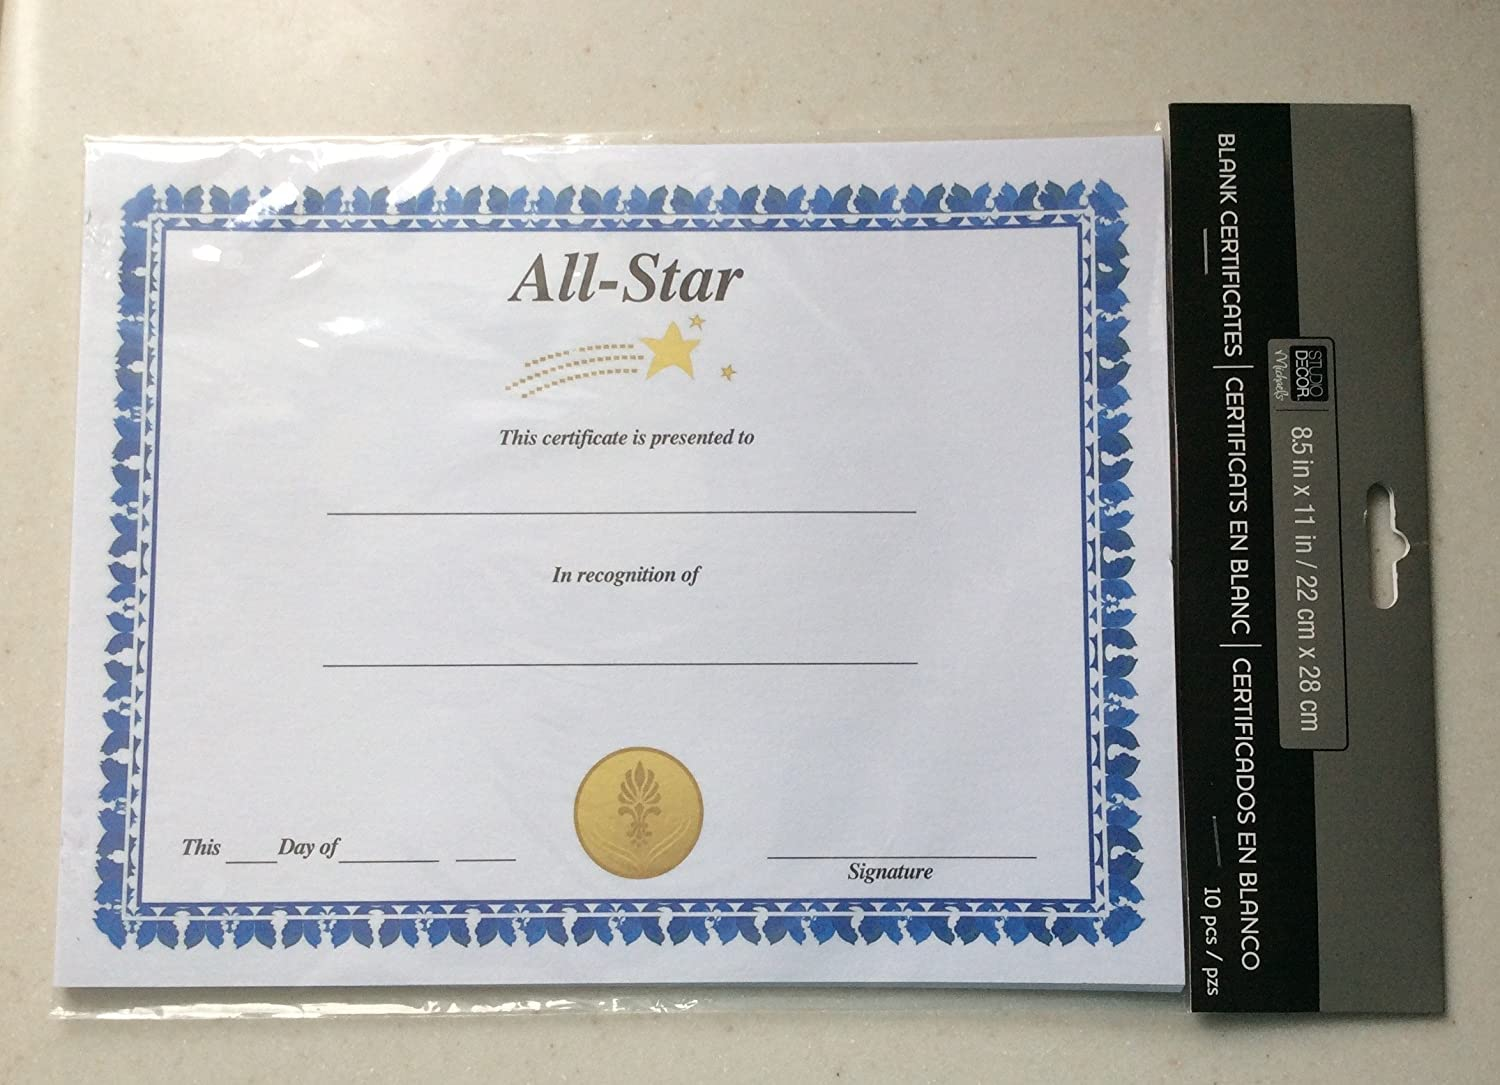 Amazon all star certificate of achievement blank 10 pack amazon all star certificate of achievement blank 10 pack 85 x 11 inches office products xflitez Gallery